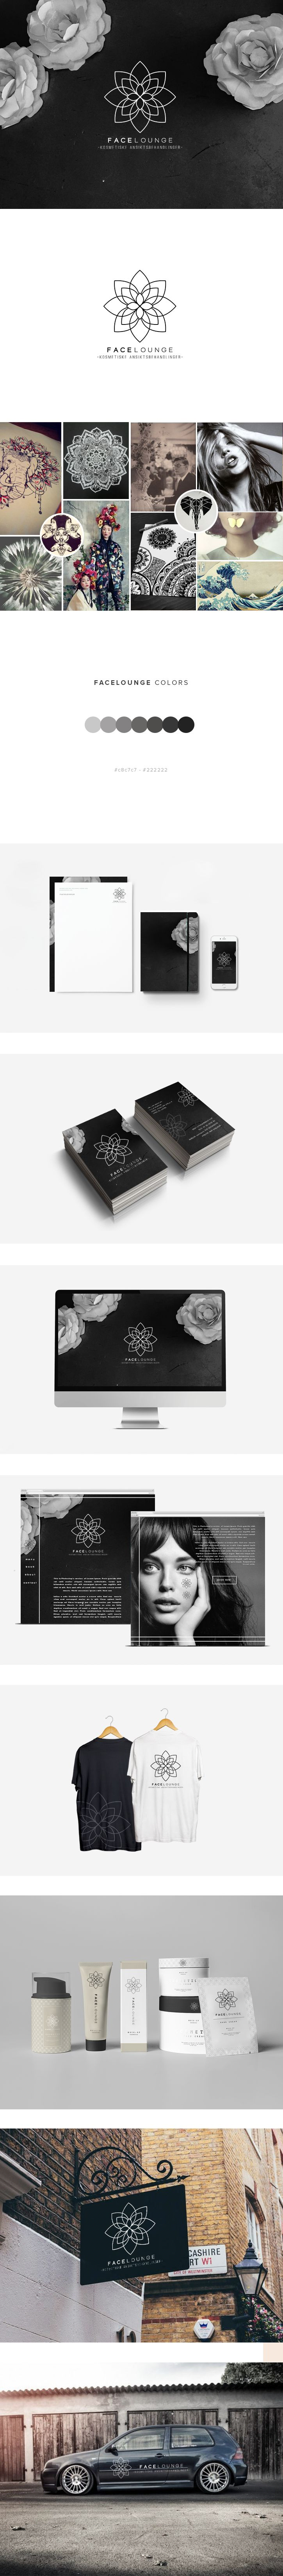 FaceLounge Branding on Behance                                                                                                                                                                                 More